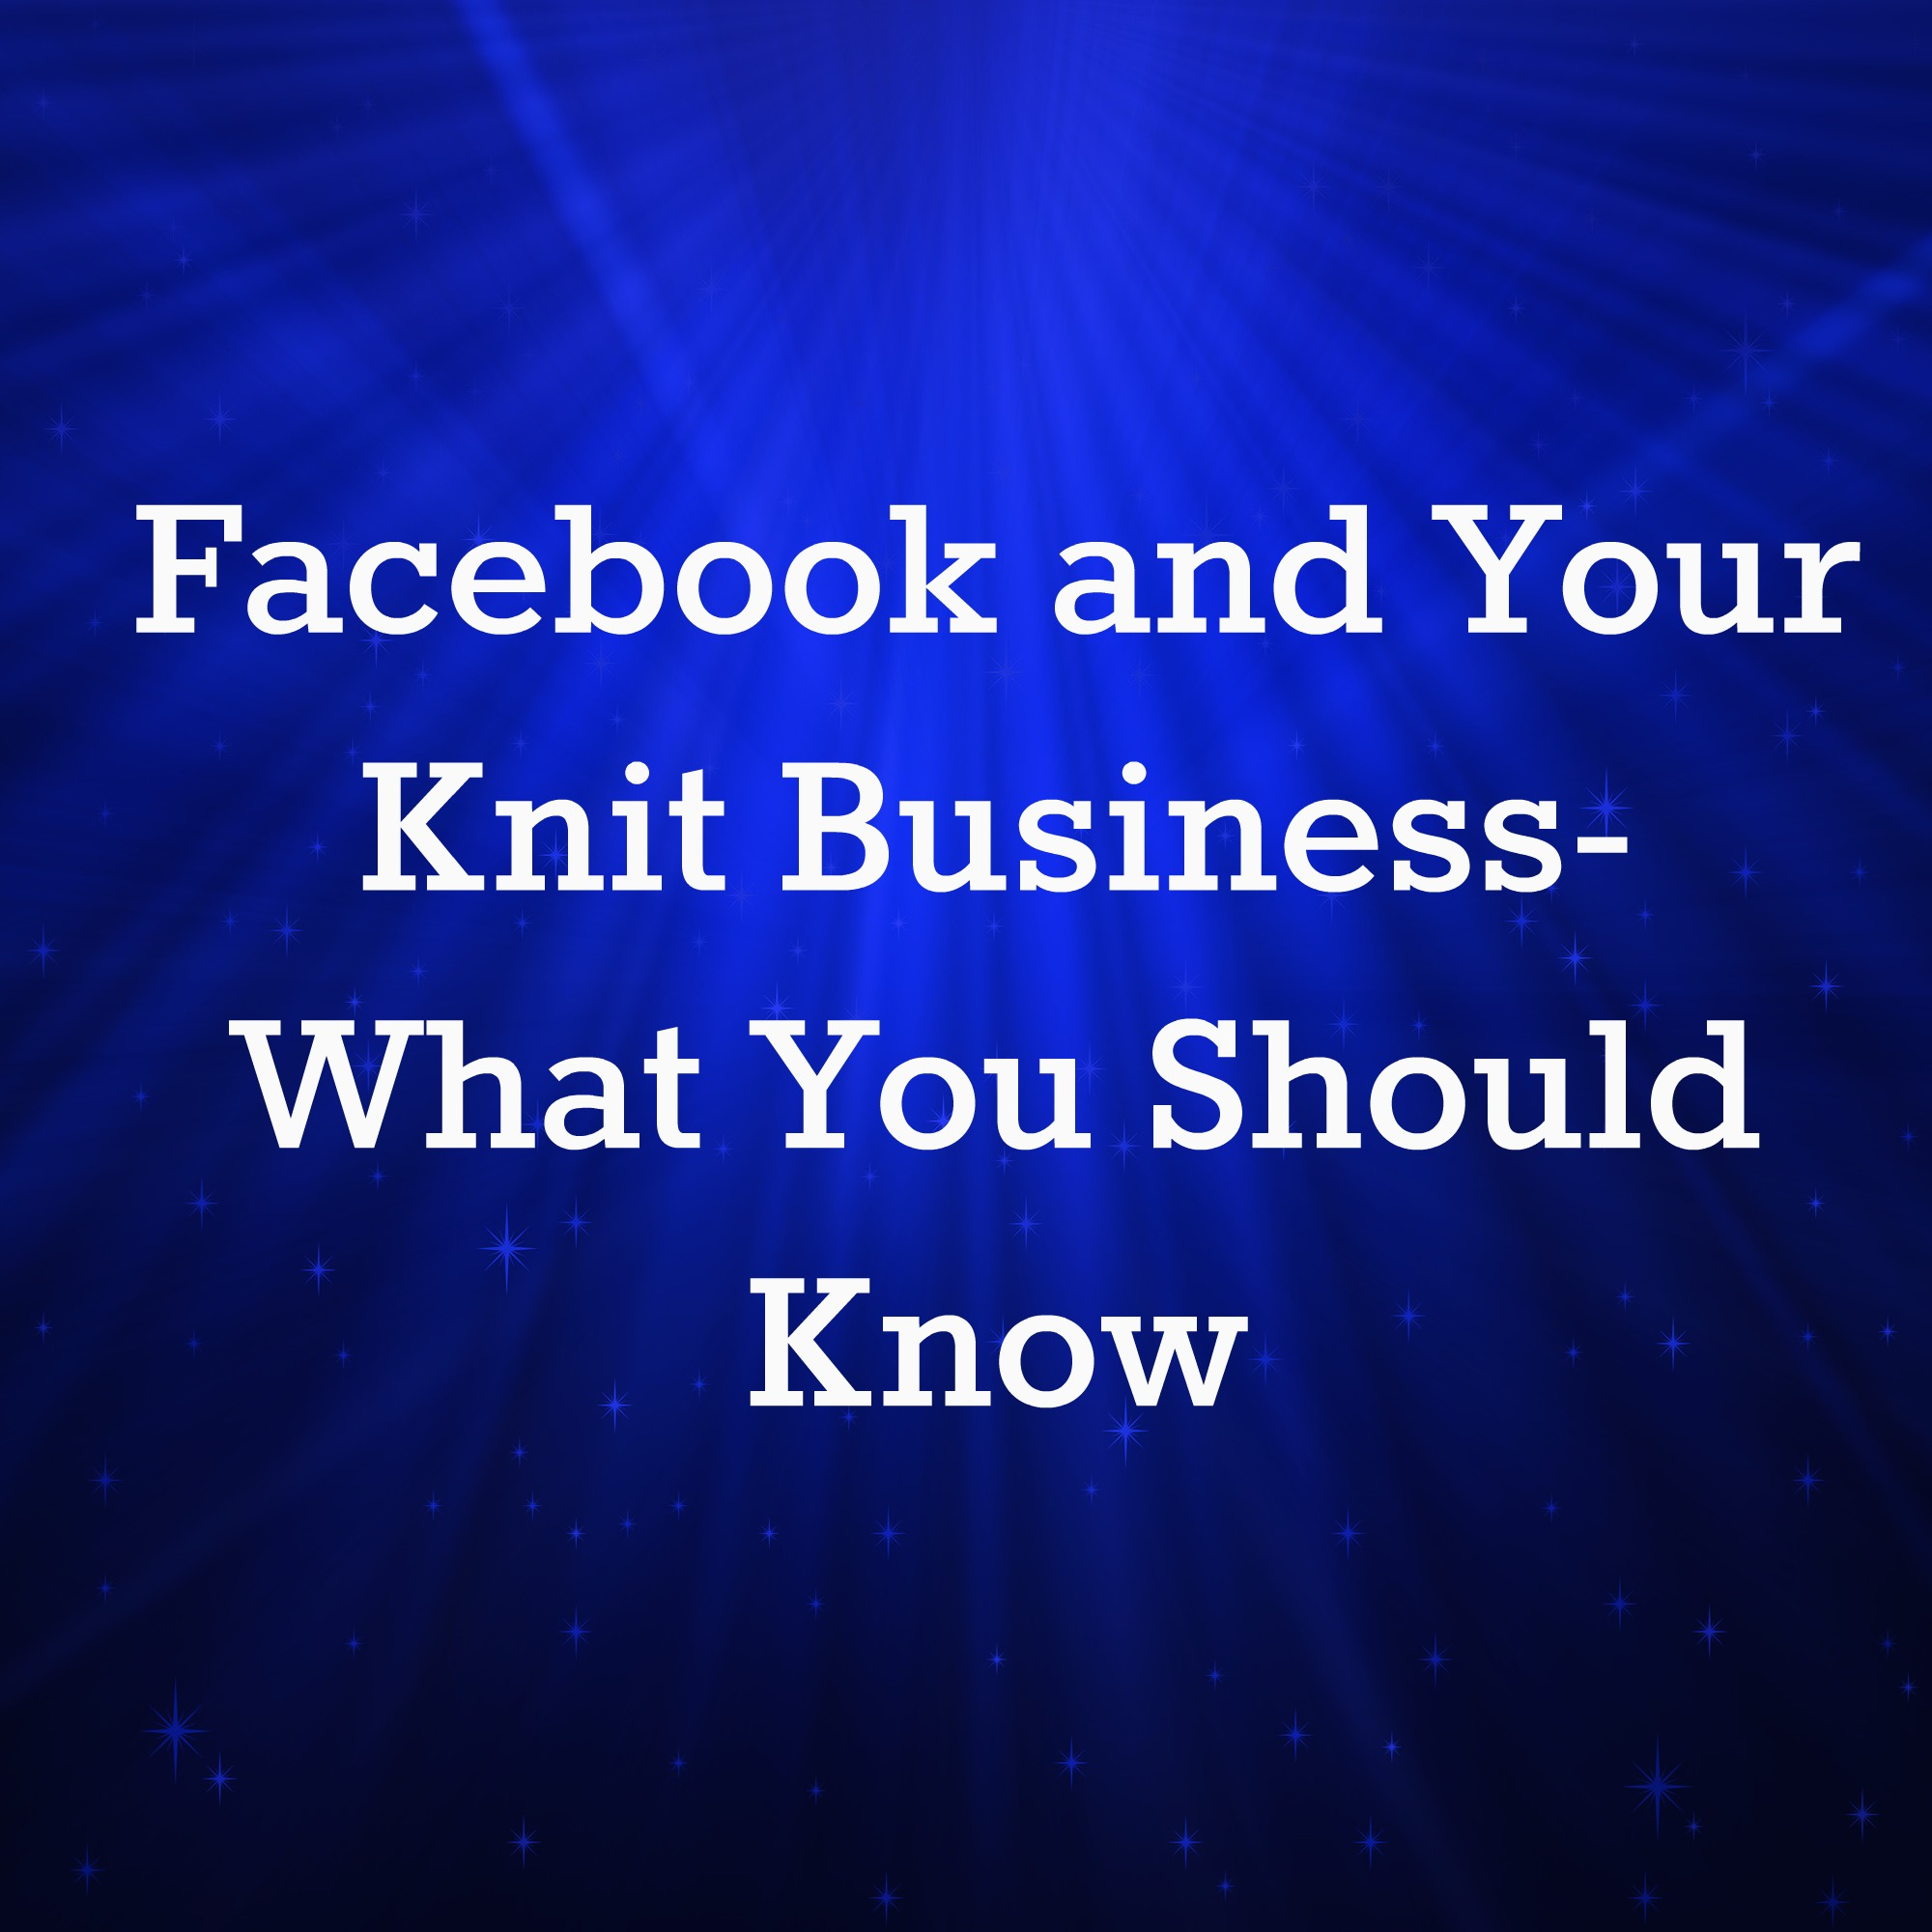 What you should know about Facebook and your knit business